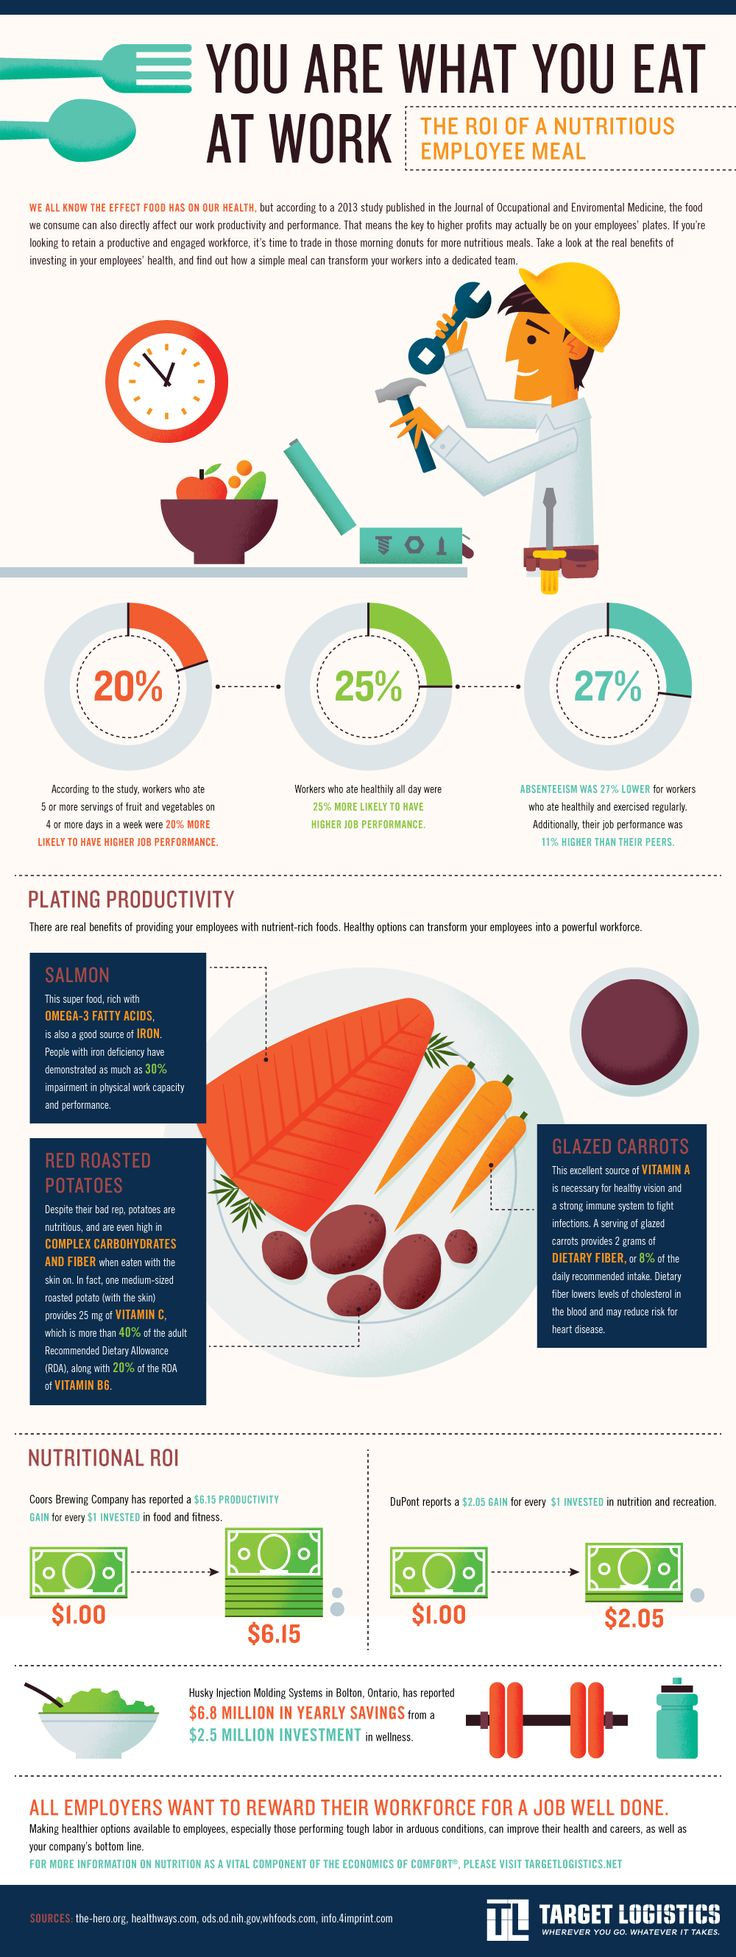 You Are What You Eat At Work [infographic] -Posted MARCH 8, 2014 |  BY STEWART COWAN